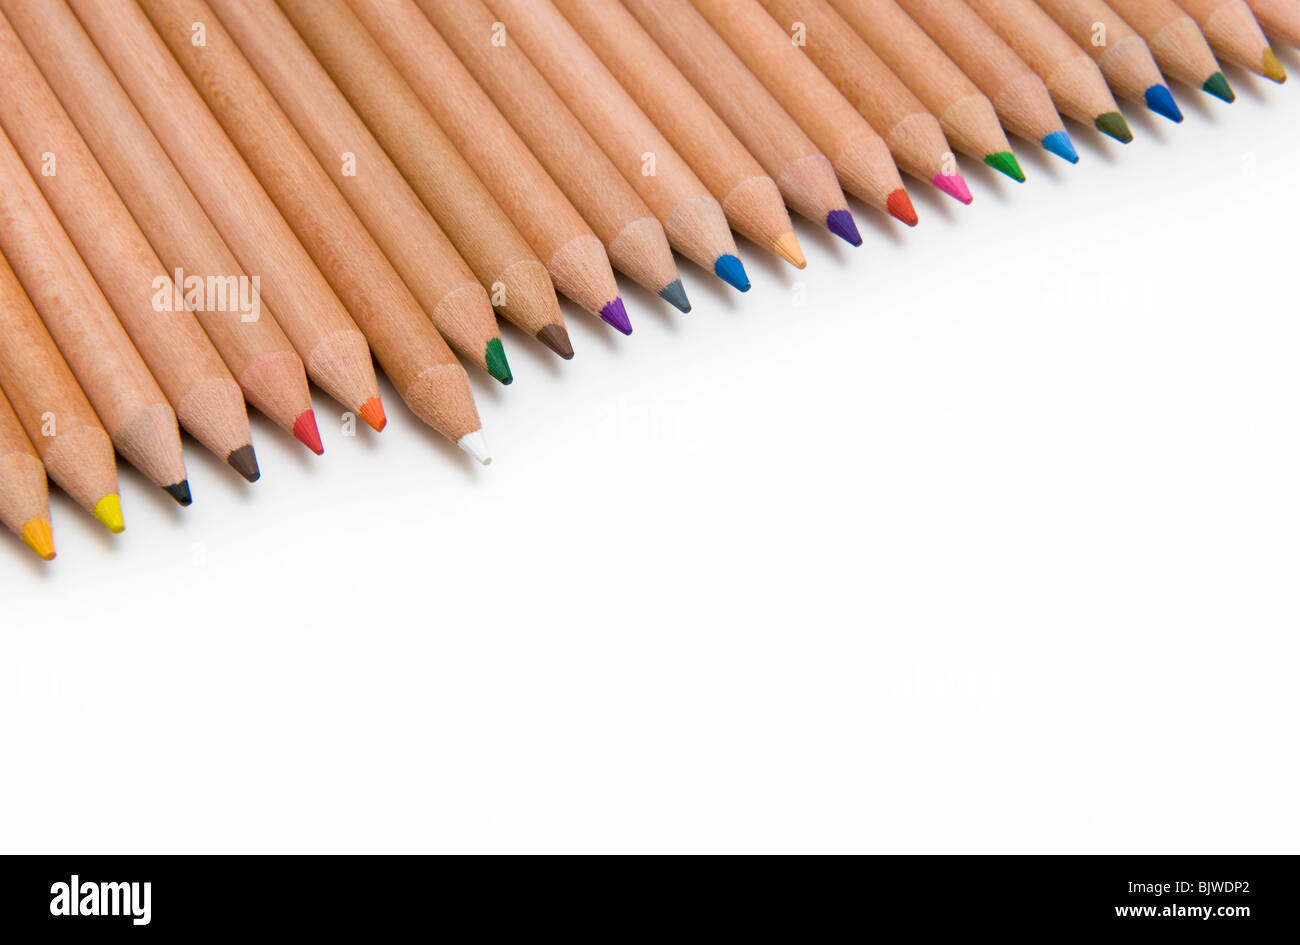 Line of Colouring Pencils on a White background With One White Pencil Standing Out - Stock Image